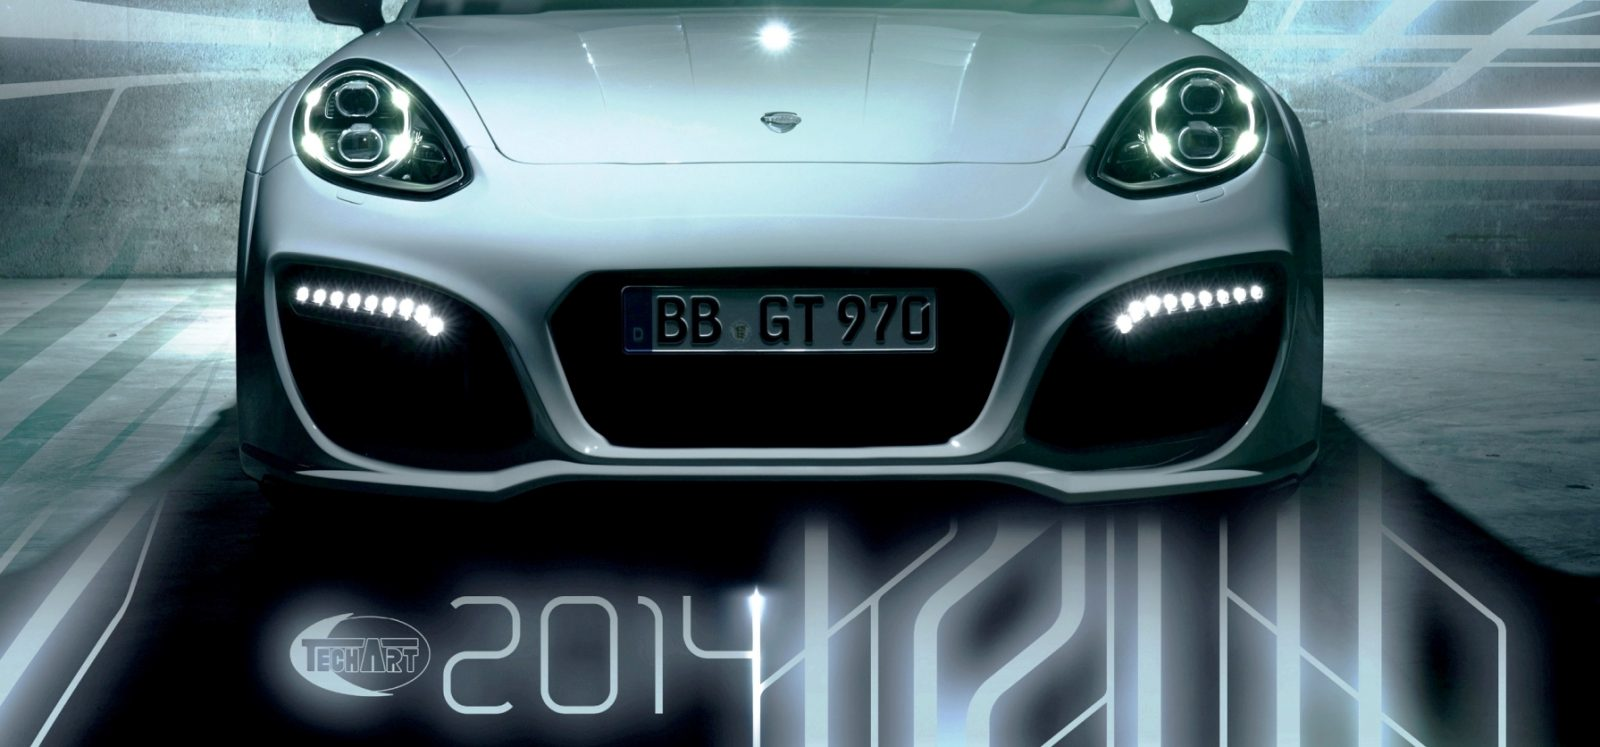 TECHART_Calendar_2014_Cover